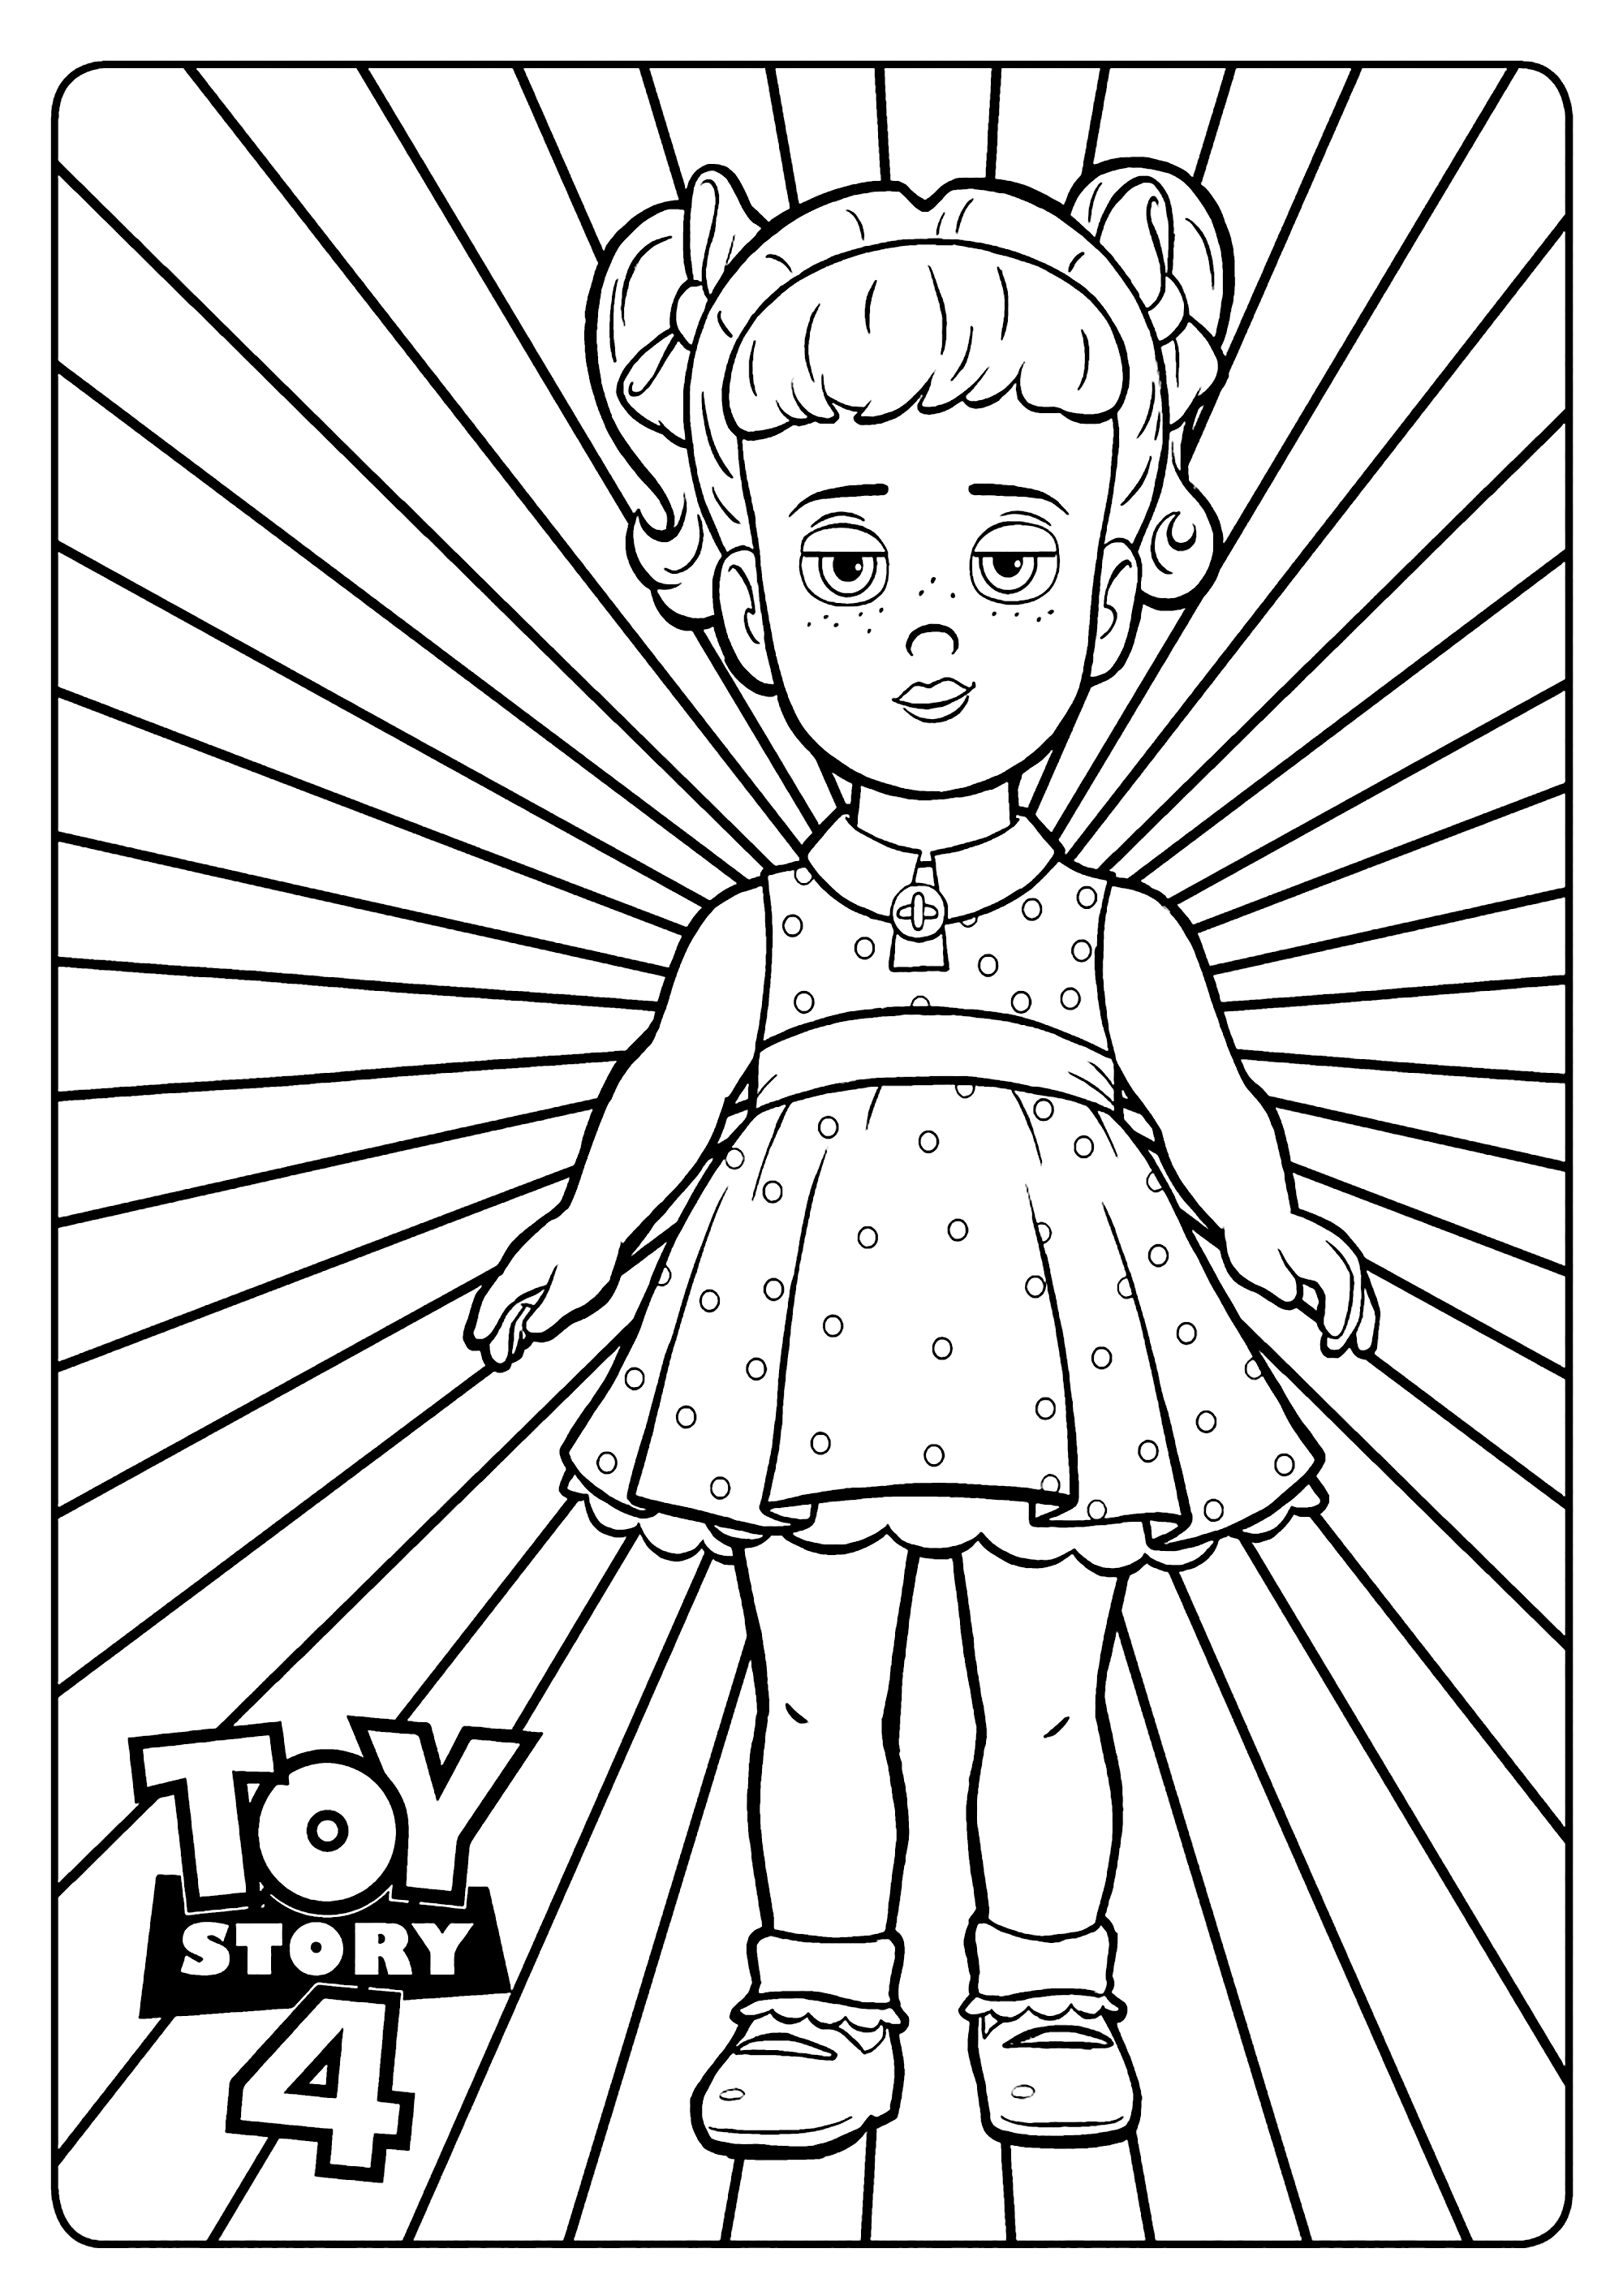 coloring toy story 4 toy story 4 forky coloring pages get coloring pages 4 coloring toy story